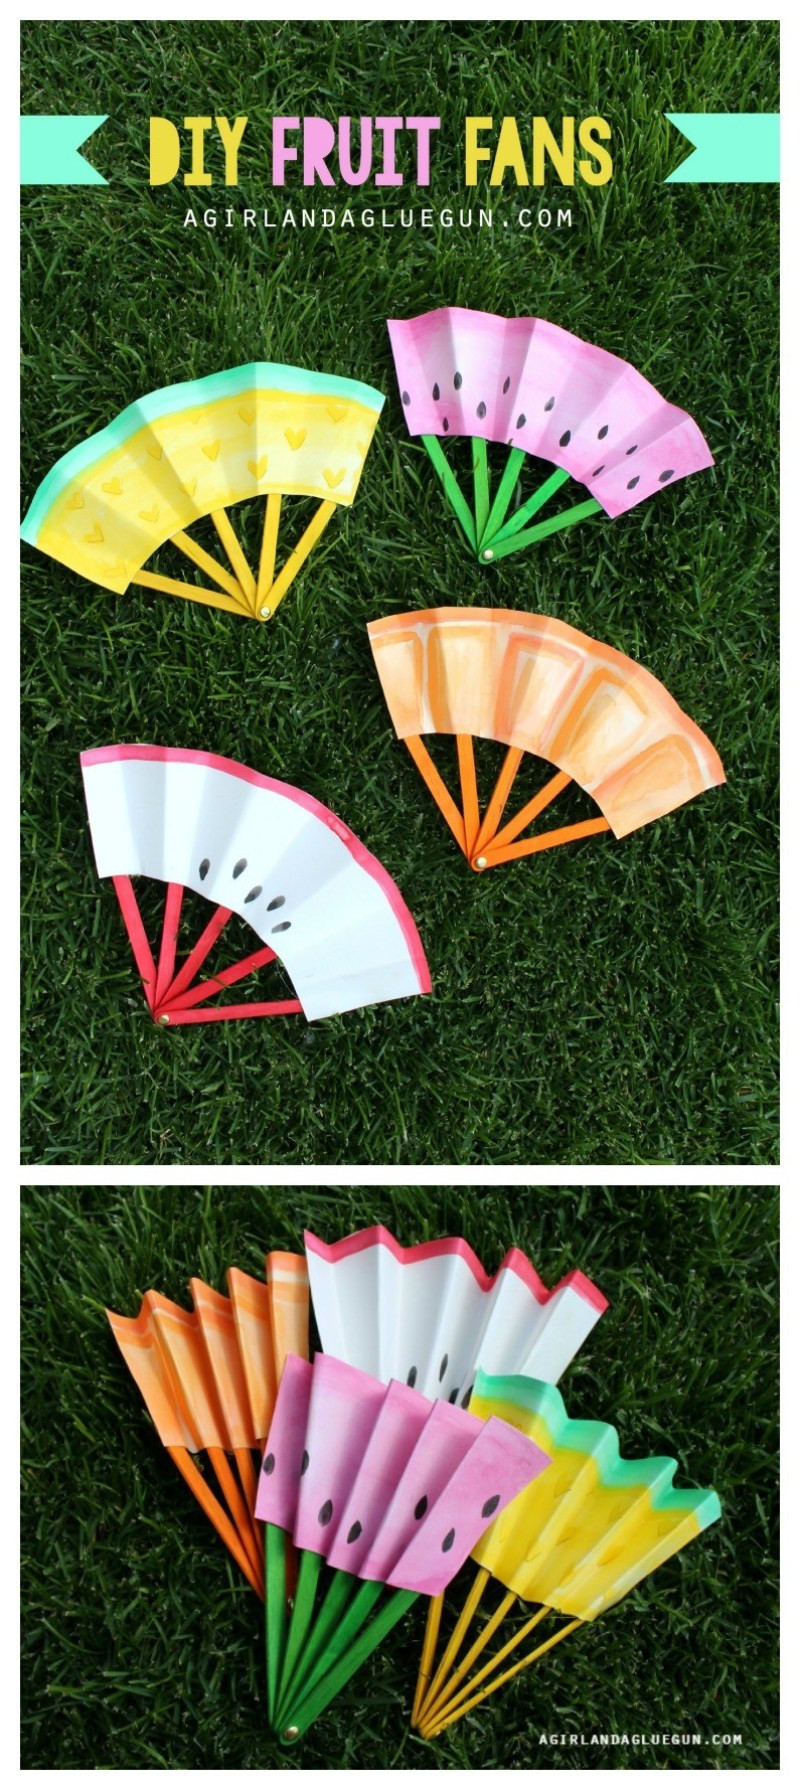 DIY Craft Ideas For Kids  12 Favorite Easy Summer Crafts for Kids on Love the Day